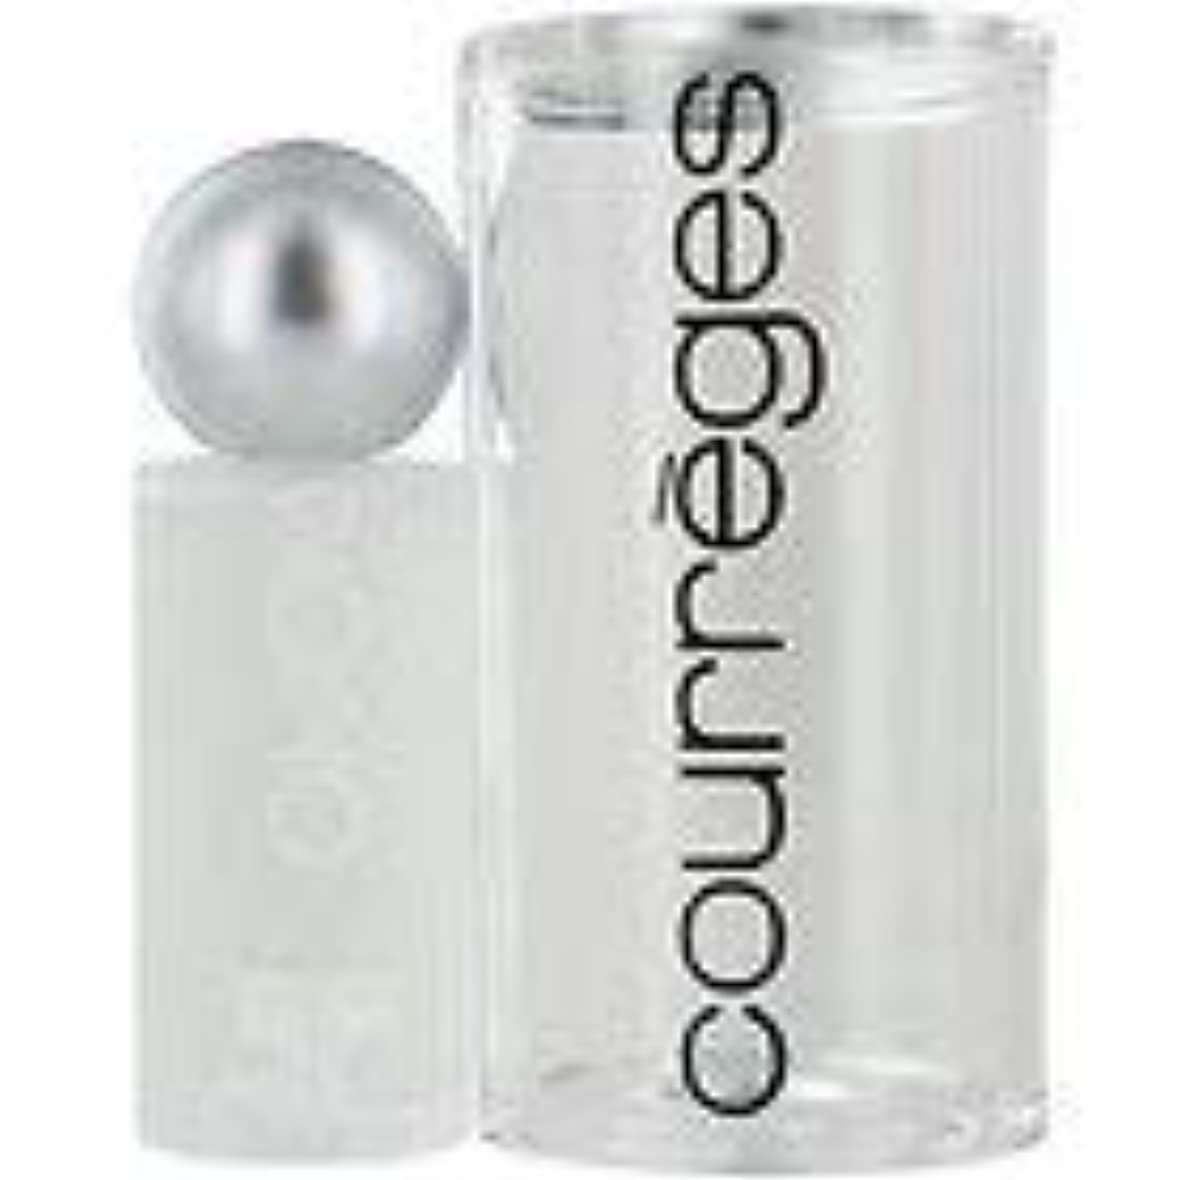 事業テザーフェリーCourreges 2020 (クレージュ 2020)  1.0 oz (30ml) EDT Spray by Courreges for Women